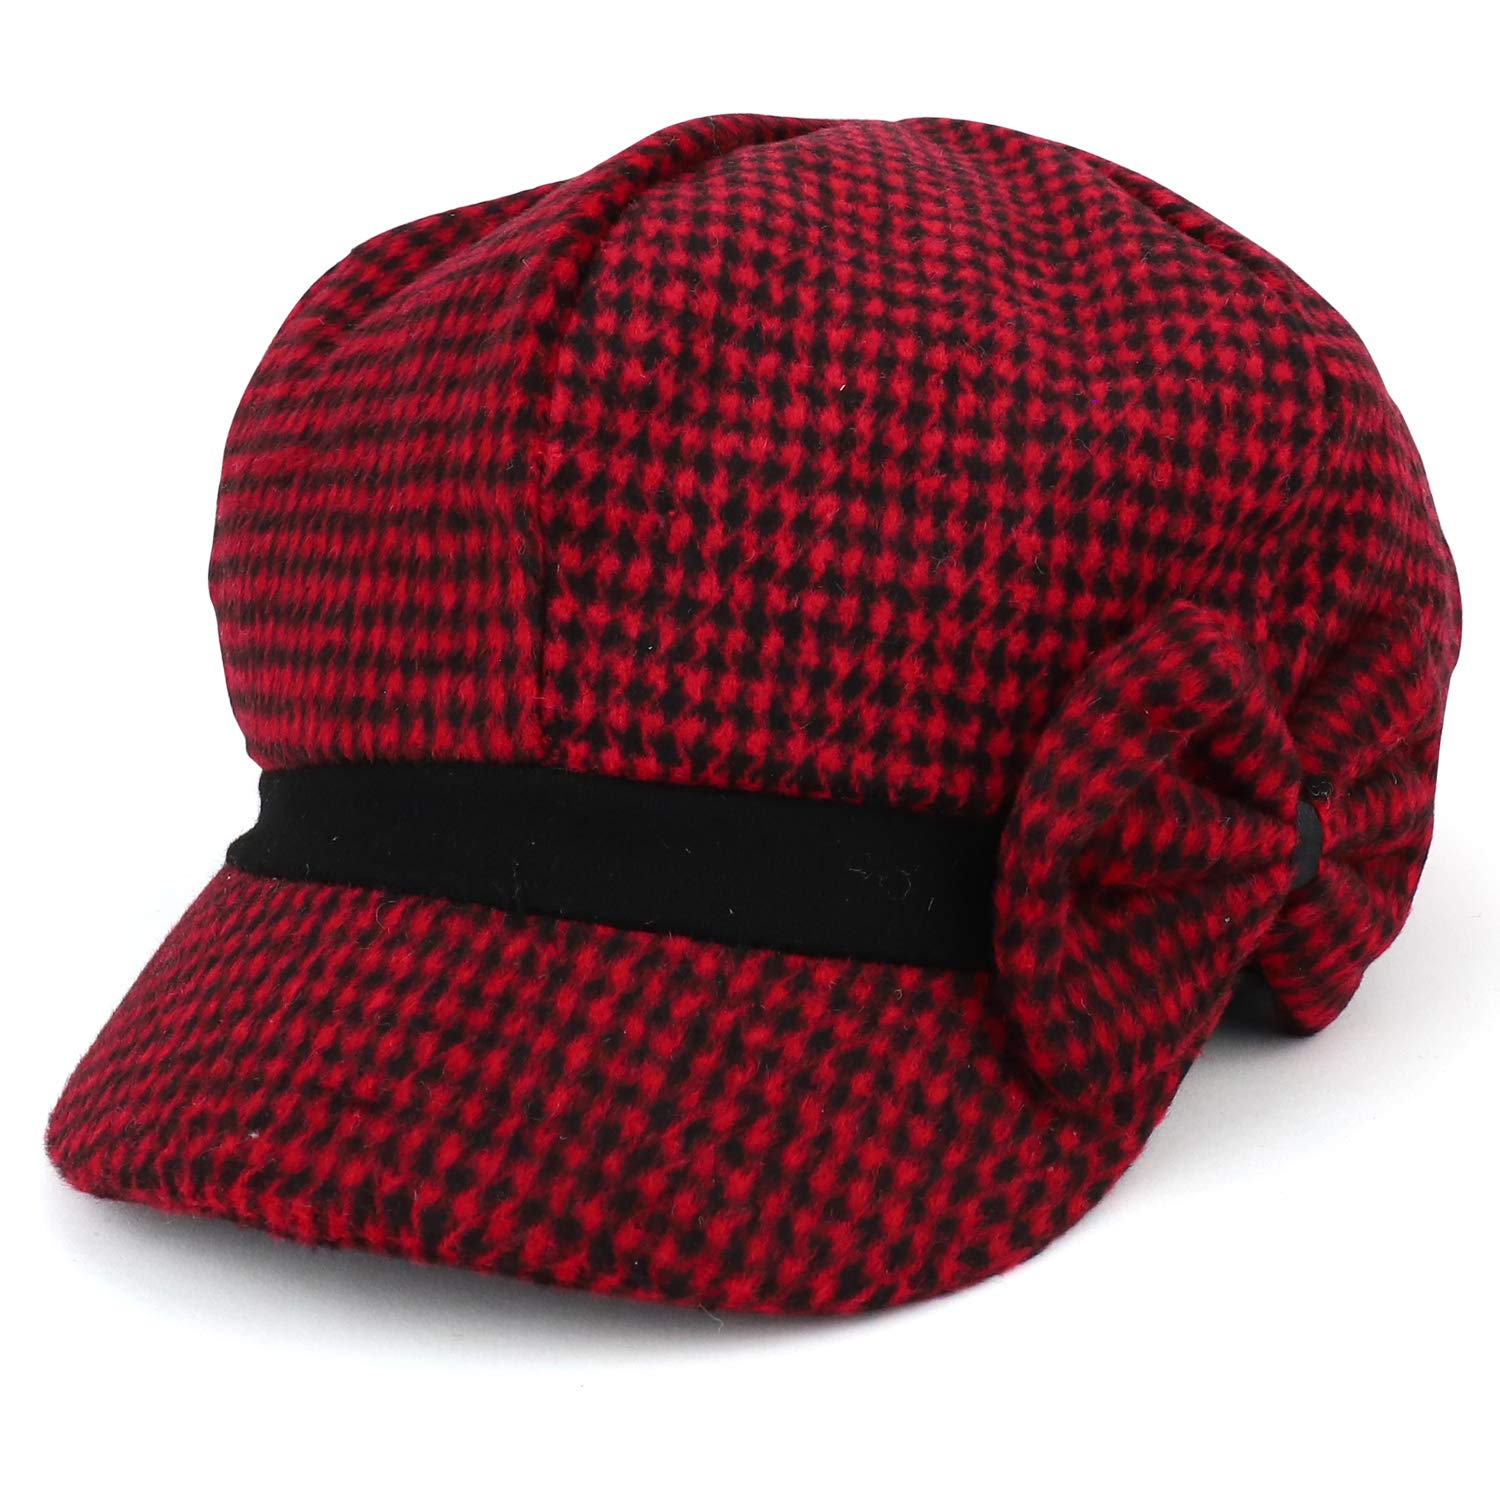 Armycrew Women's Houndstooth Pattern Newsboy Cap with Side Bow - Red